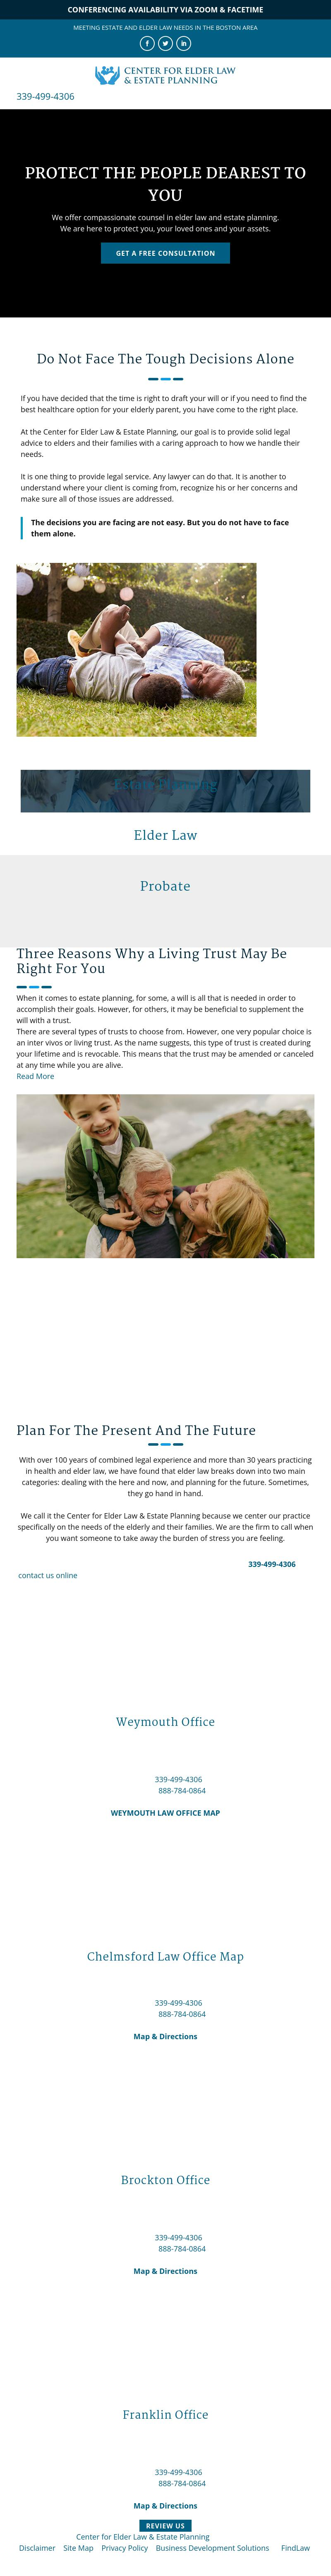 Center For Elder Law & Estate Planning - Chelmsford MA Lawyers